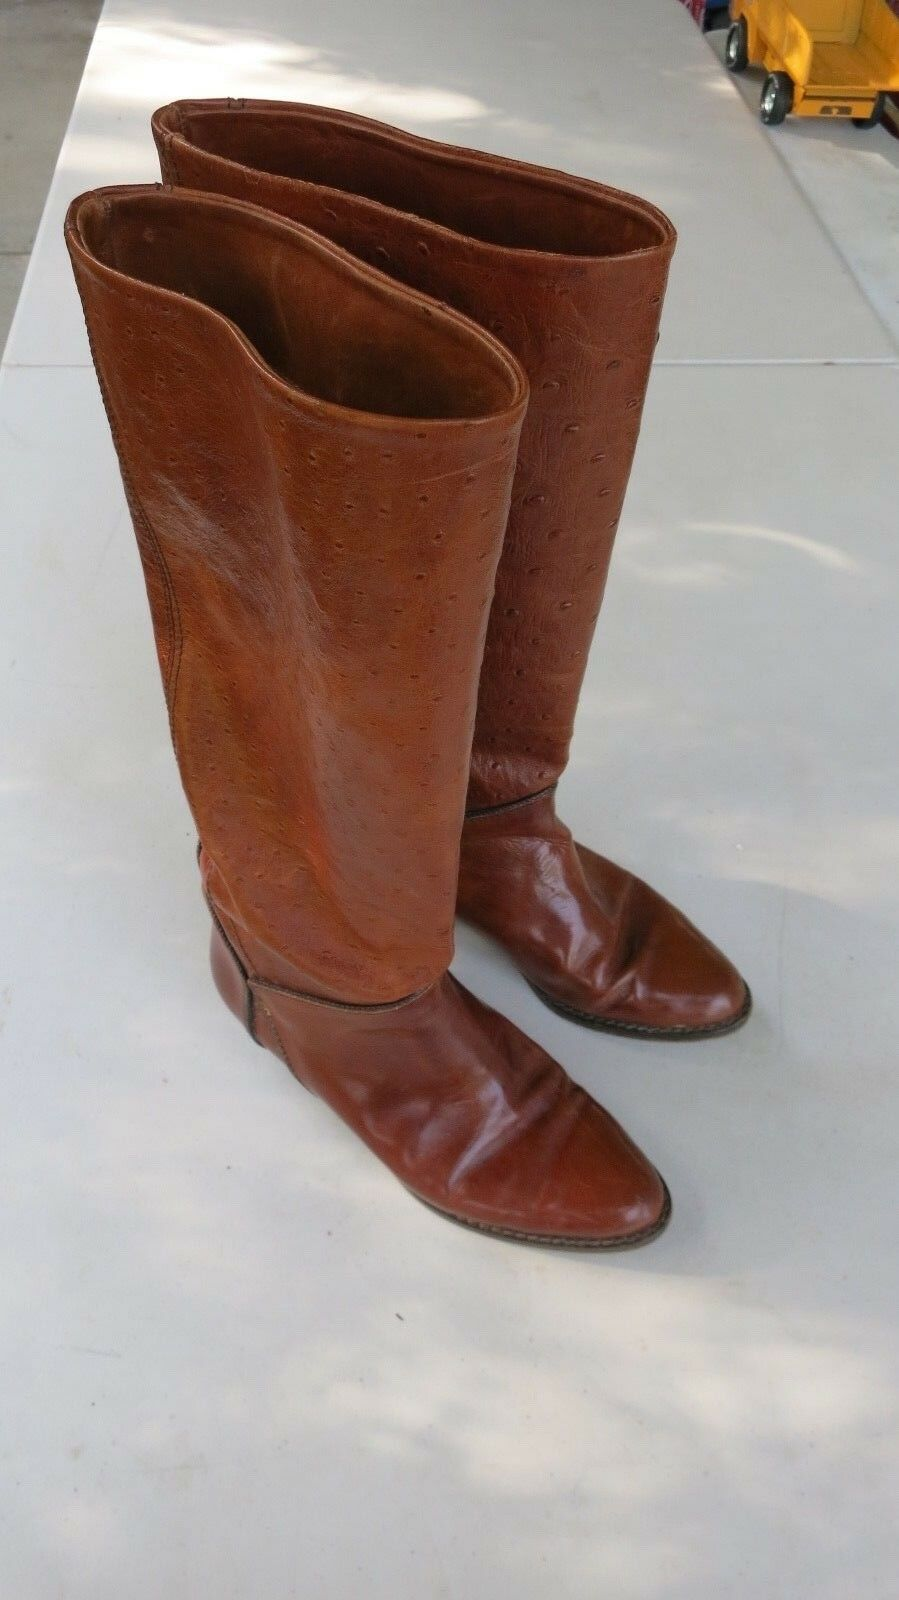 CASADEI MONTALDO'S women's brown leather skin boots size 7M ITALY